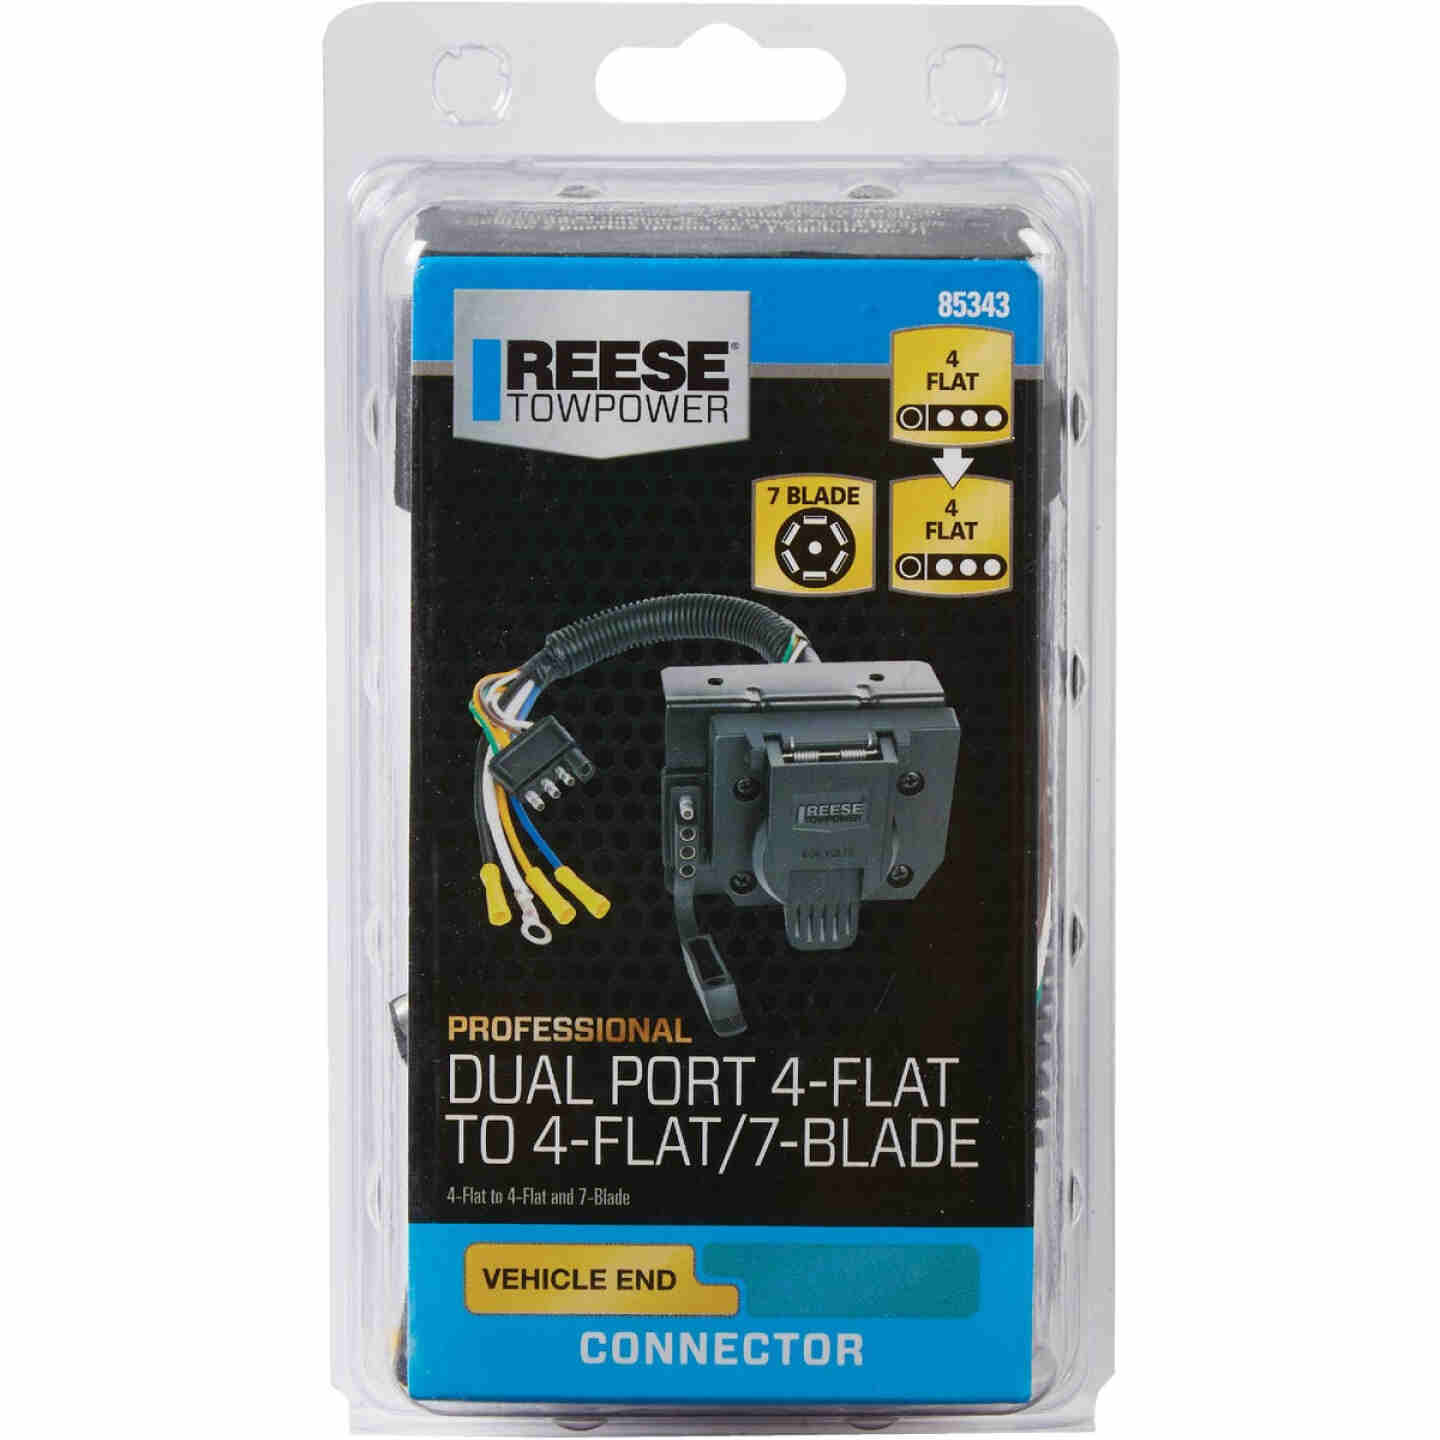 Reese Towpower 7-Flat & 4-Flat Dual Port Plug-In Adapter Image 2